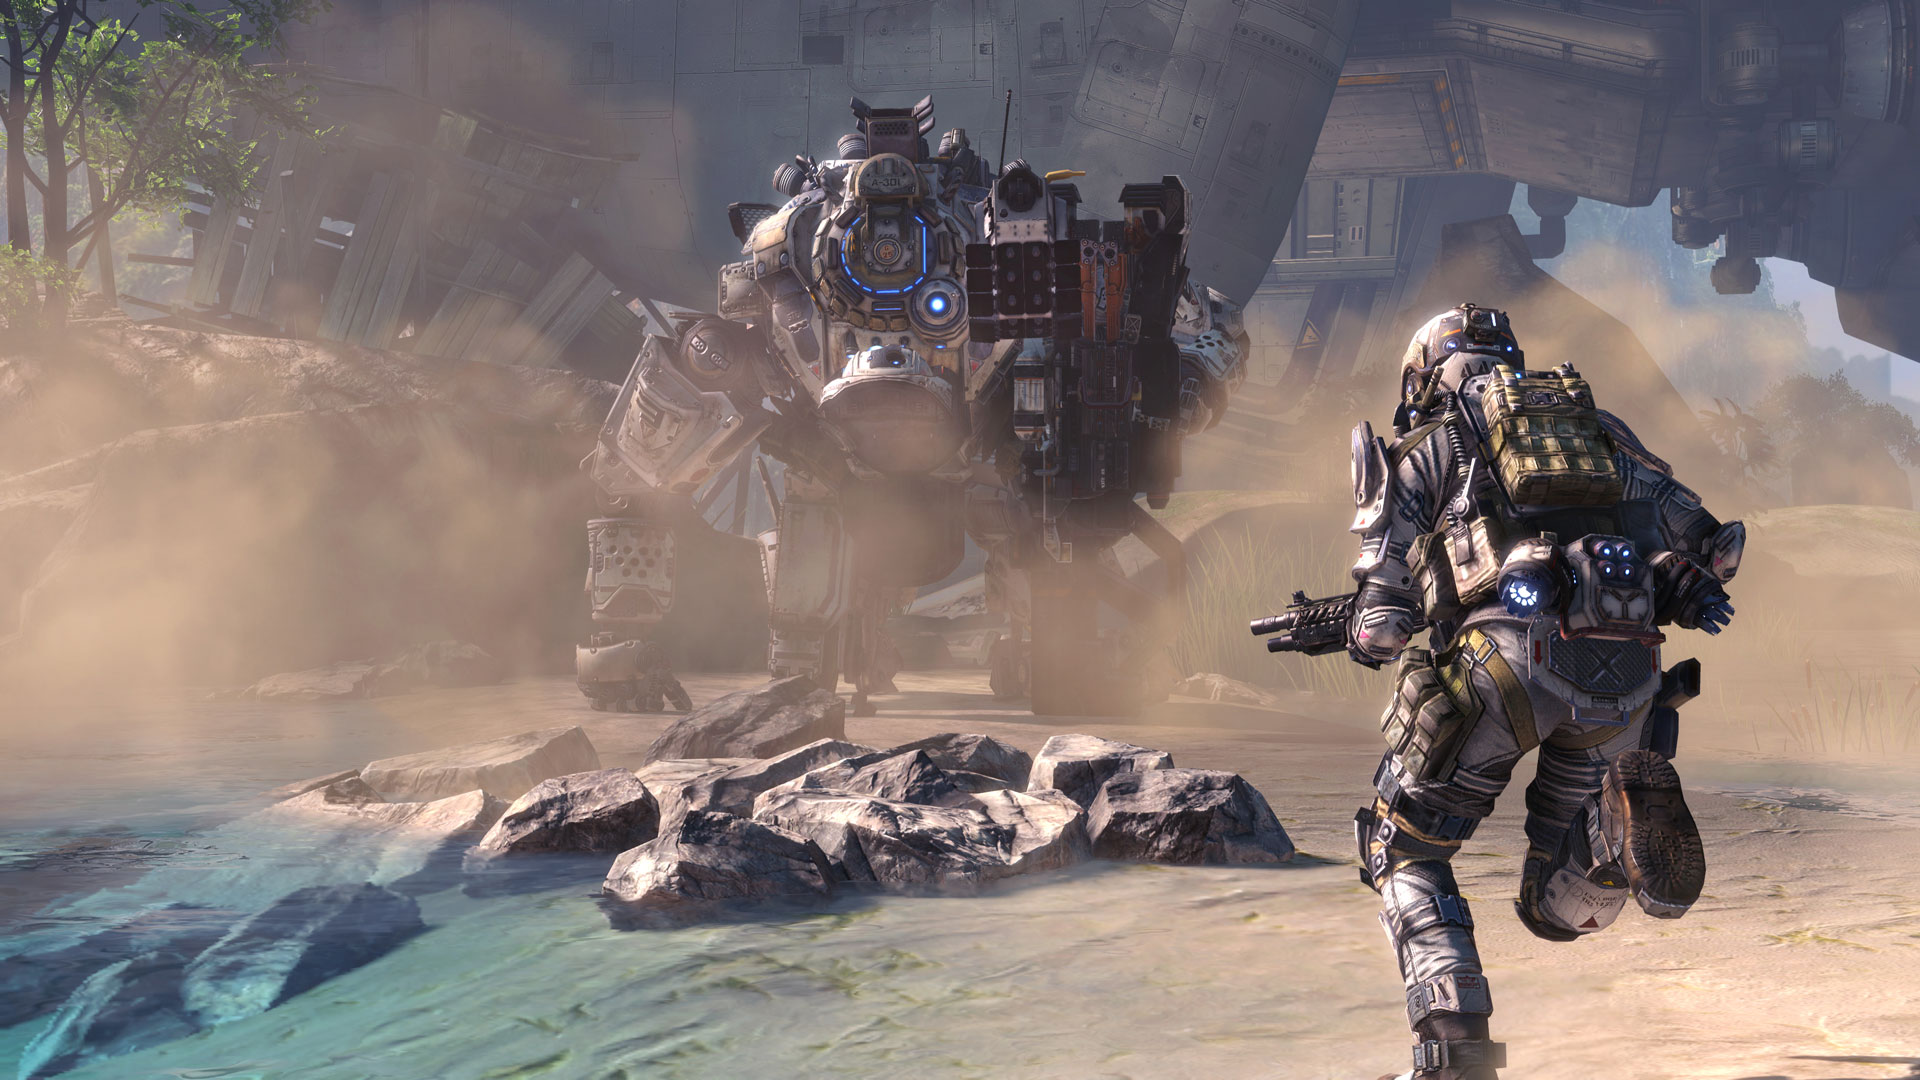 The popular franchise Titanfall directs its gaze to Android in 2016 1